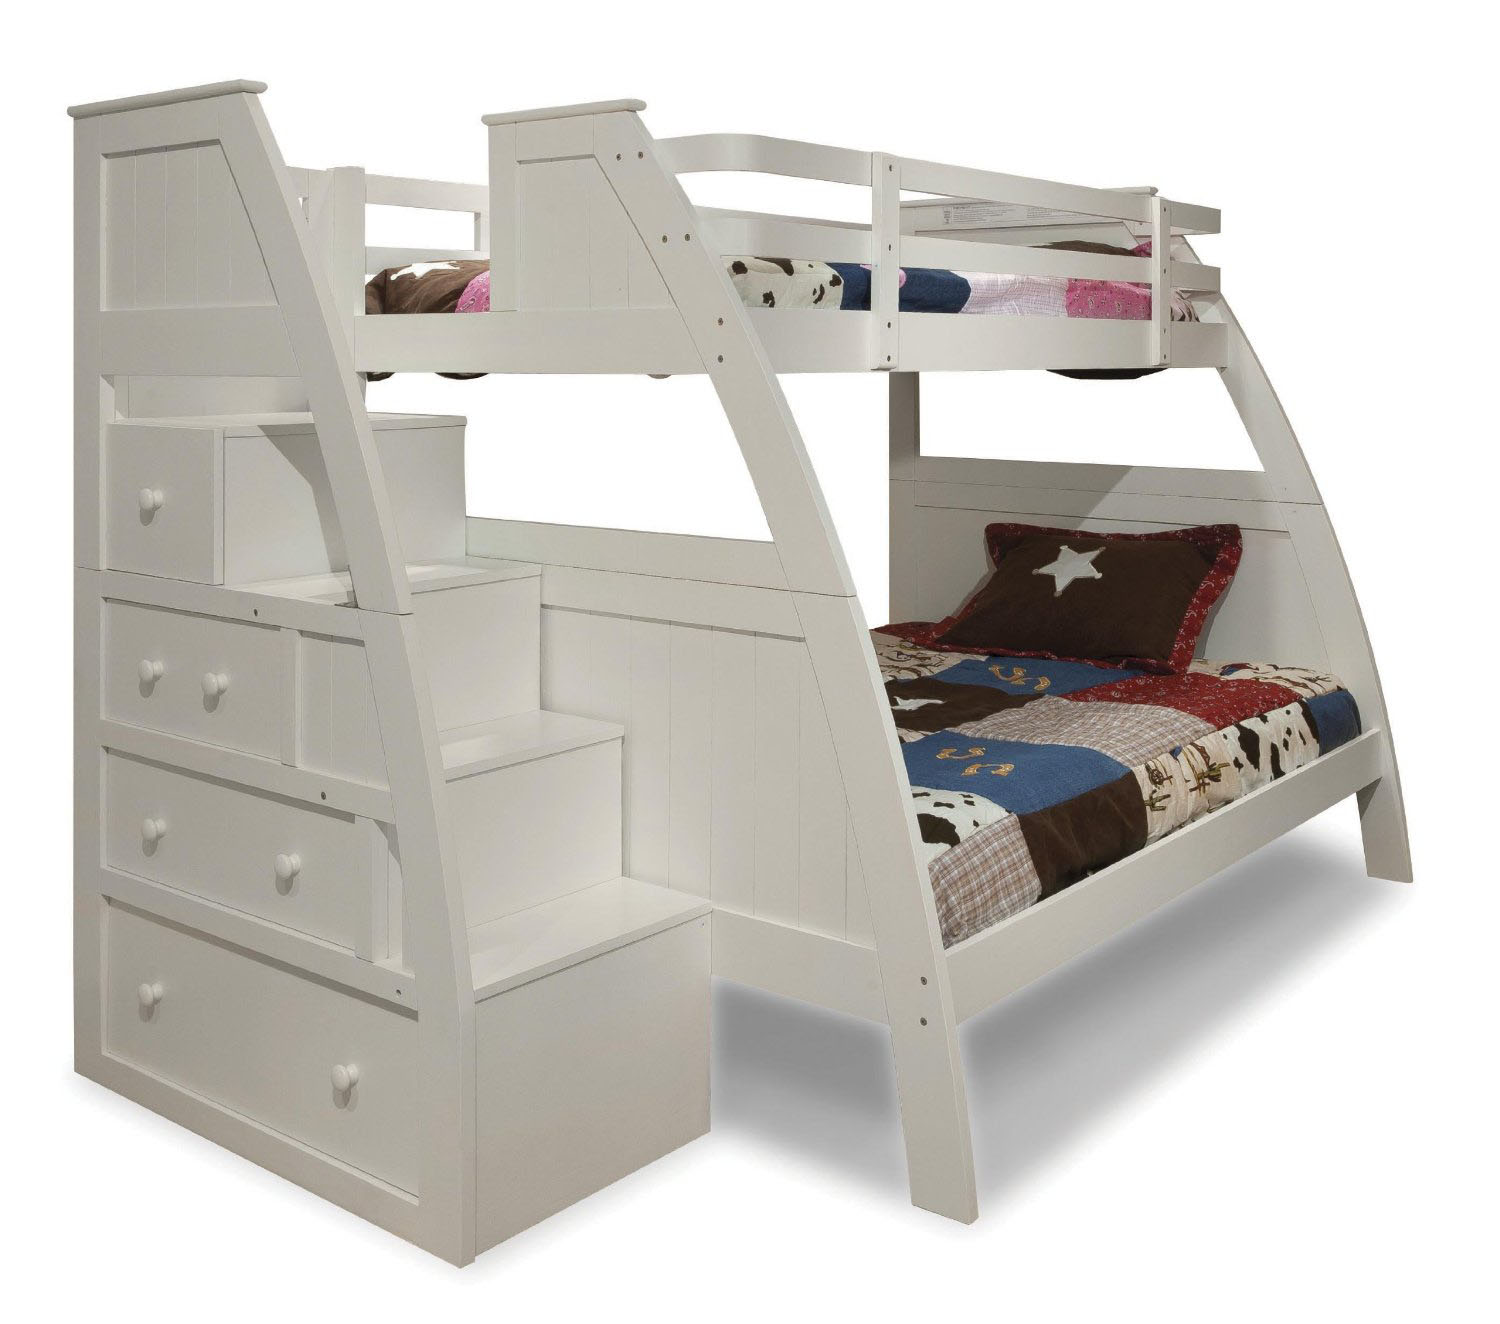 ... bunk beds with stairs and storage drawers white bunk beds with bunk